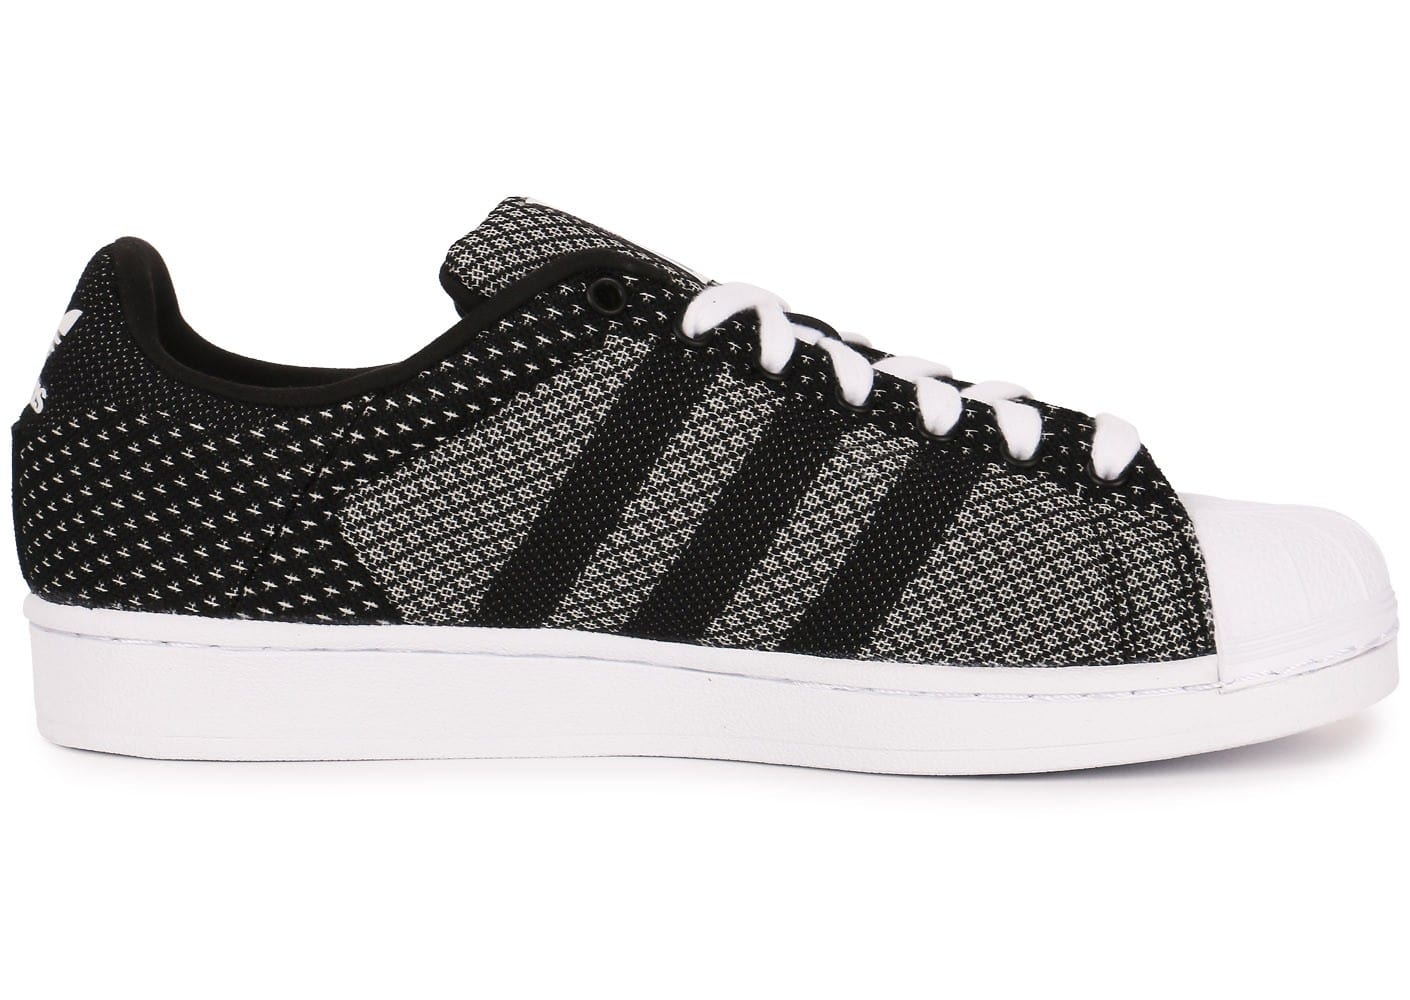 low priced f80fd 9924a ... Chaussures adidas Superstar Weave noire vue dessous ...